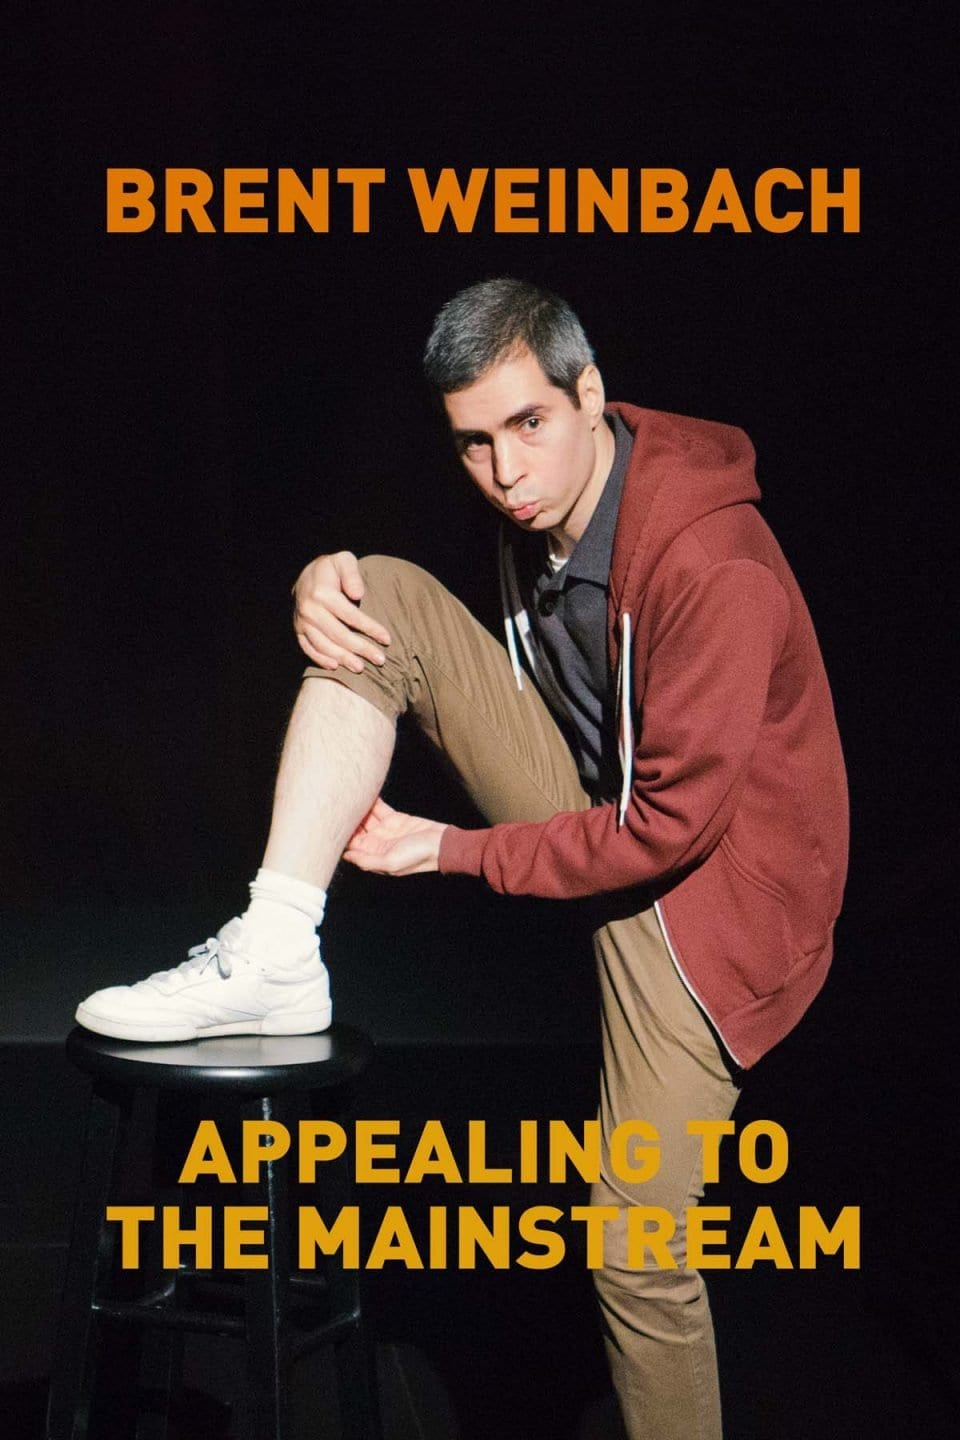 Brent Weinbach Appealing To the Mainstream